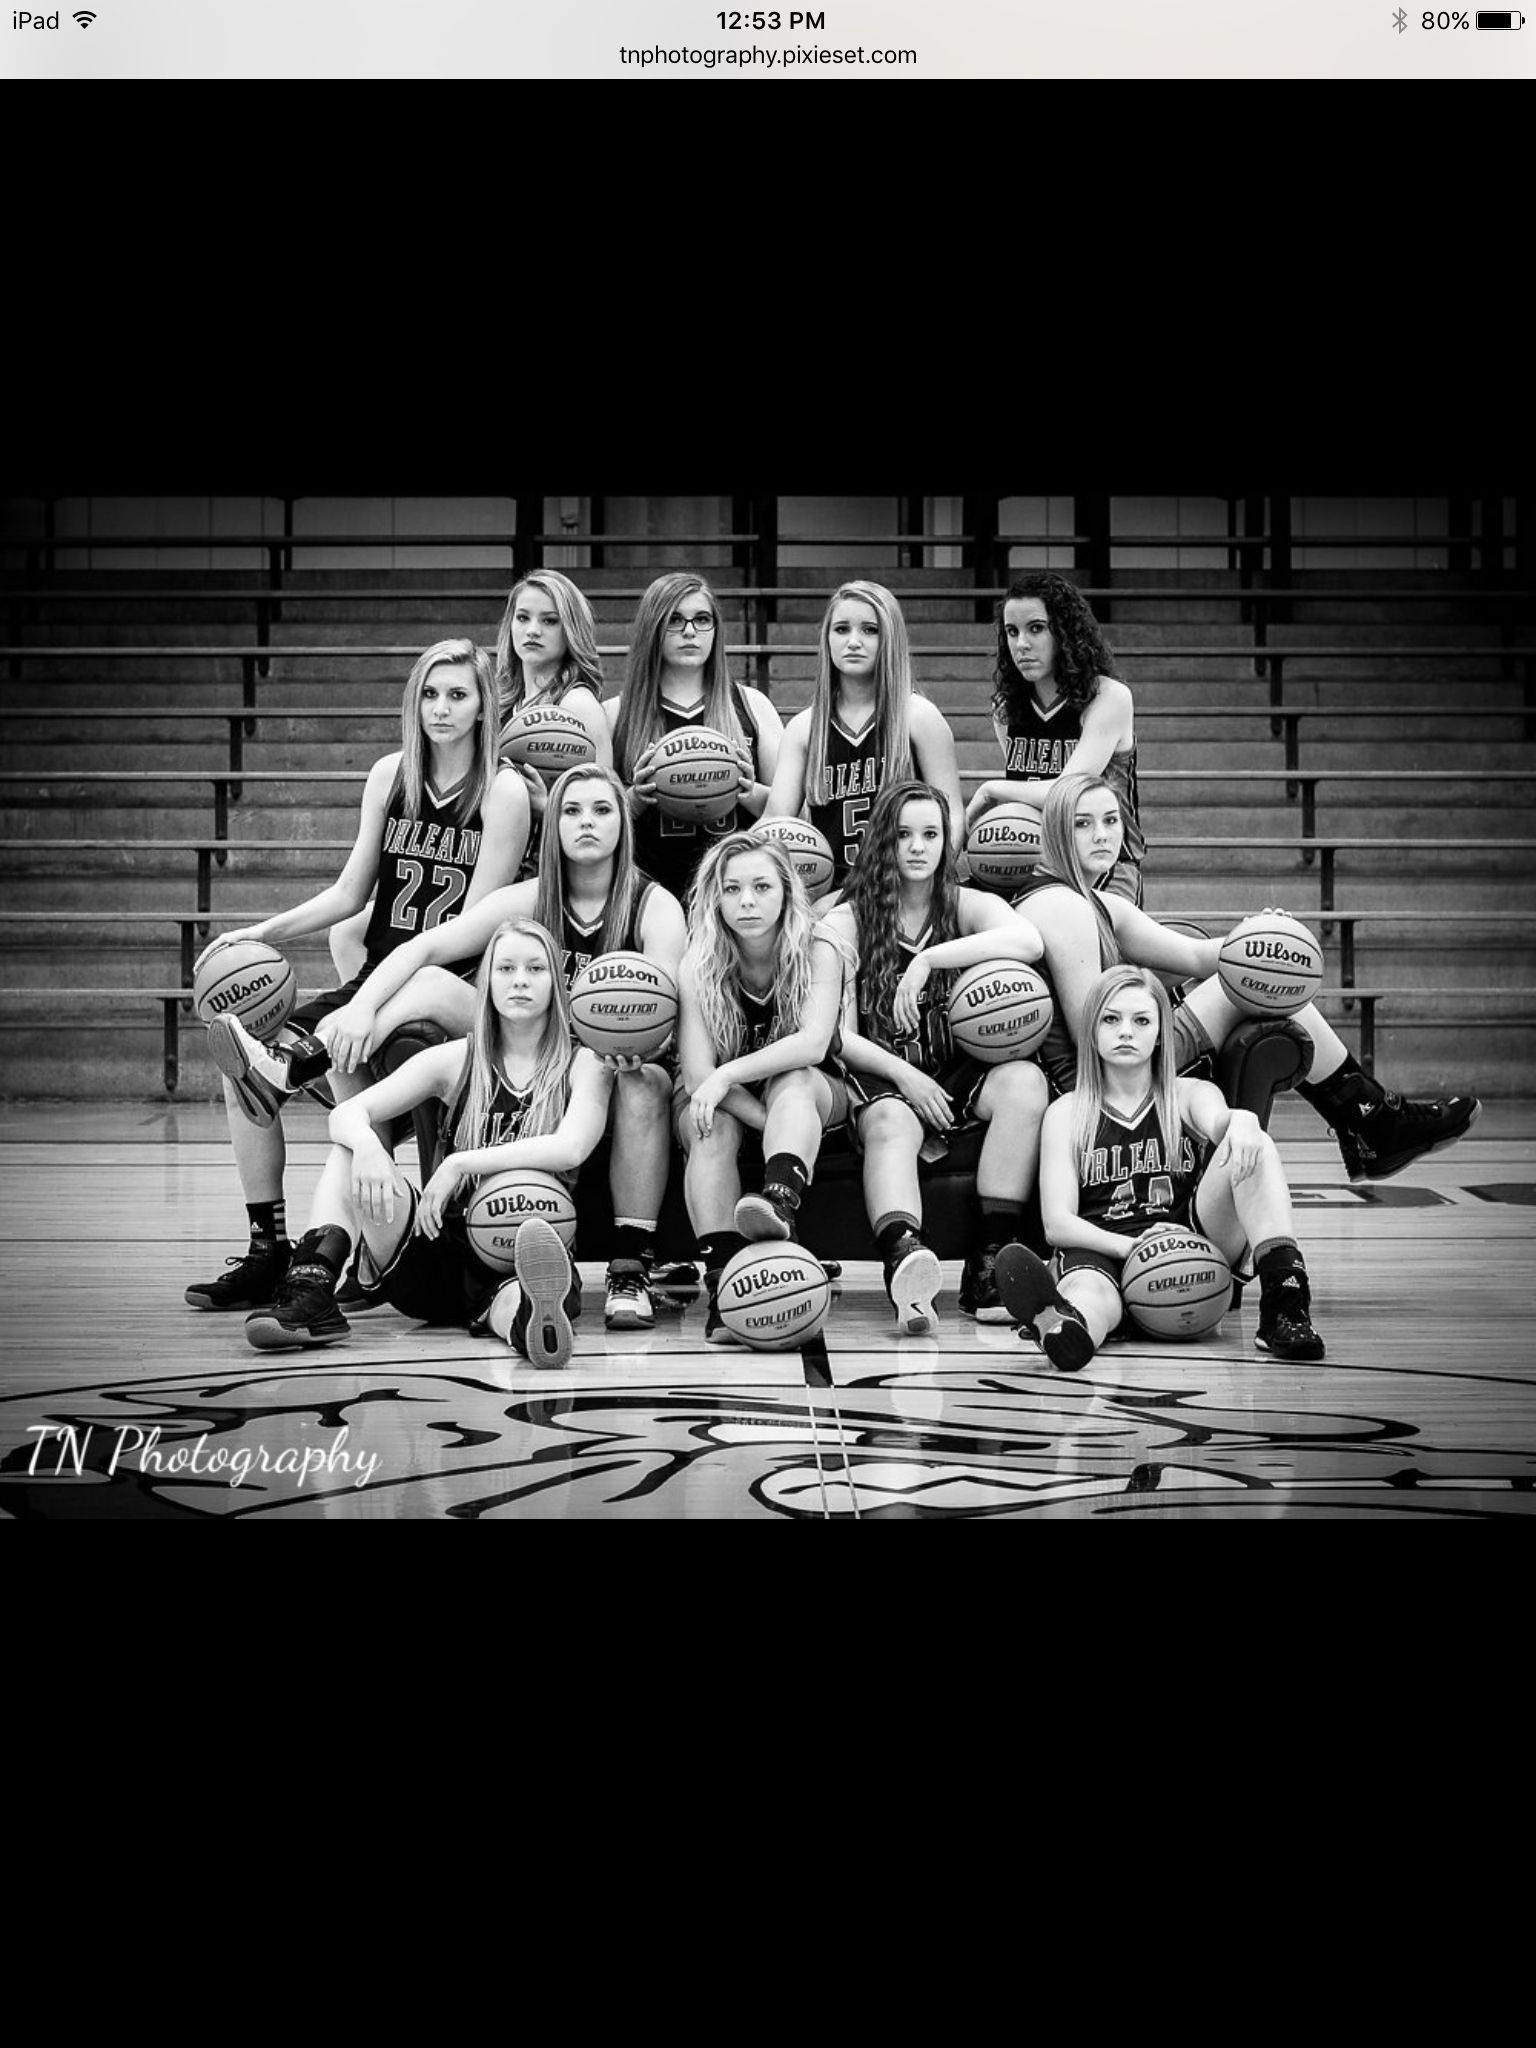 Girls Basketball Team Pictures Sports Photography Basketballpictures Basketball Team Pictures Team Pictures Team Photography